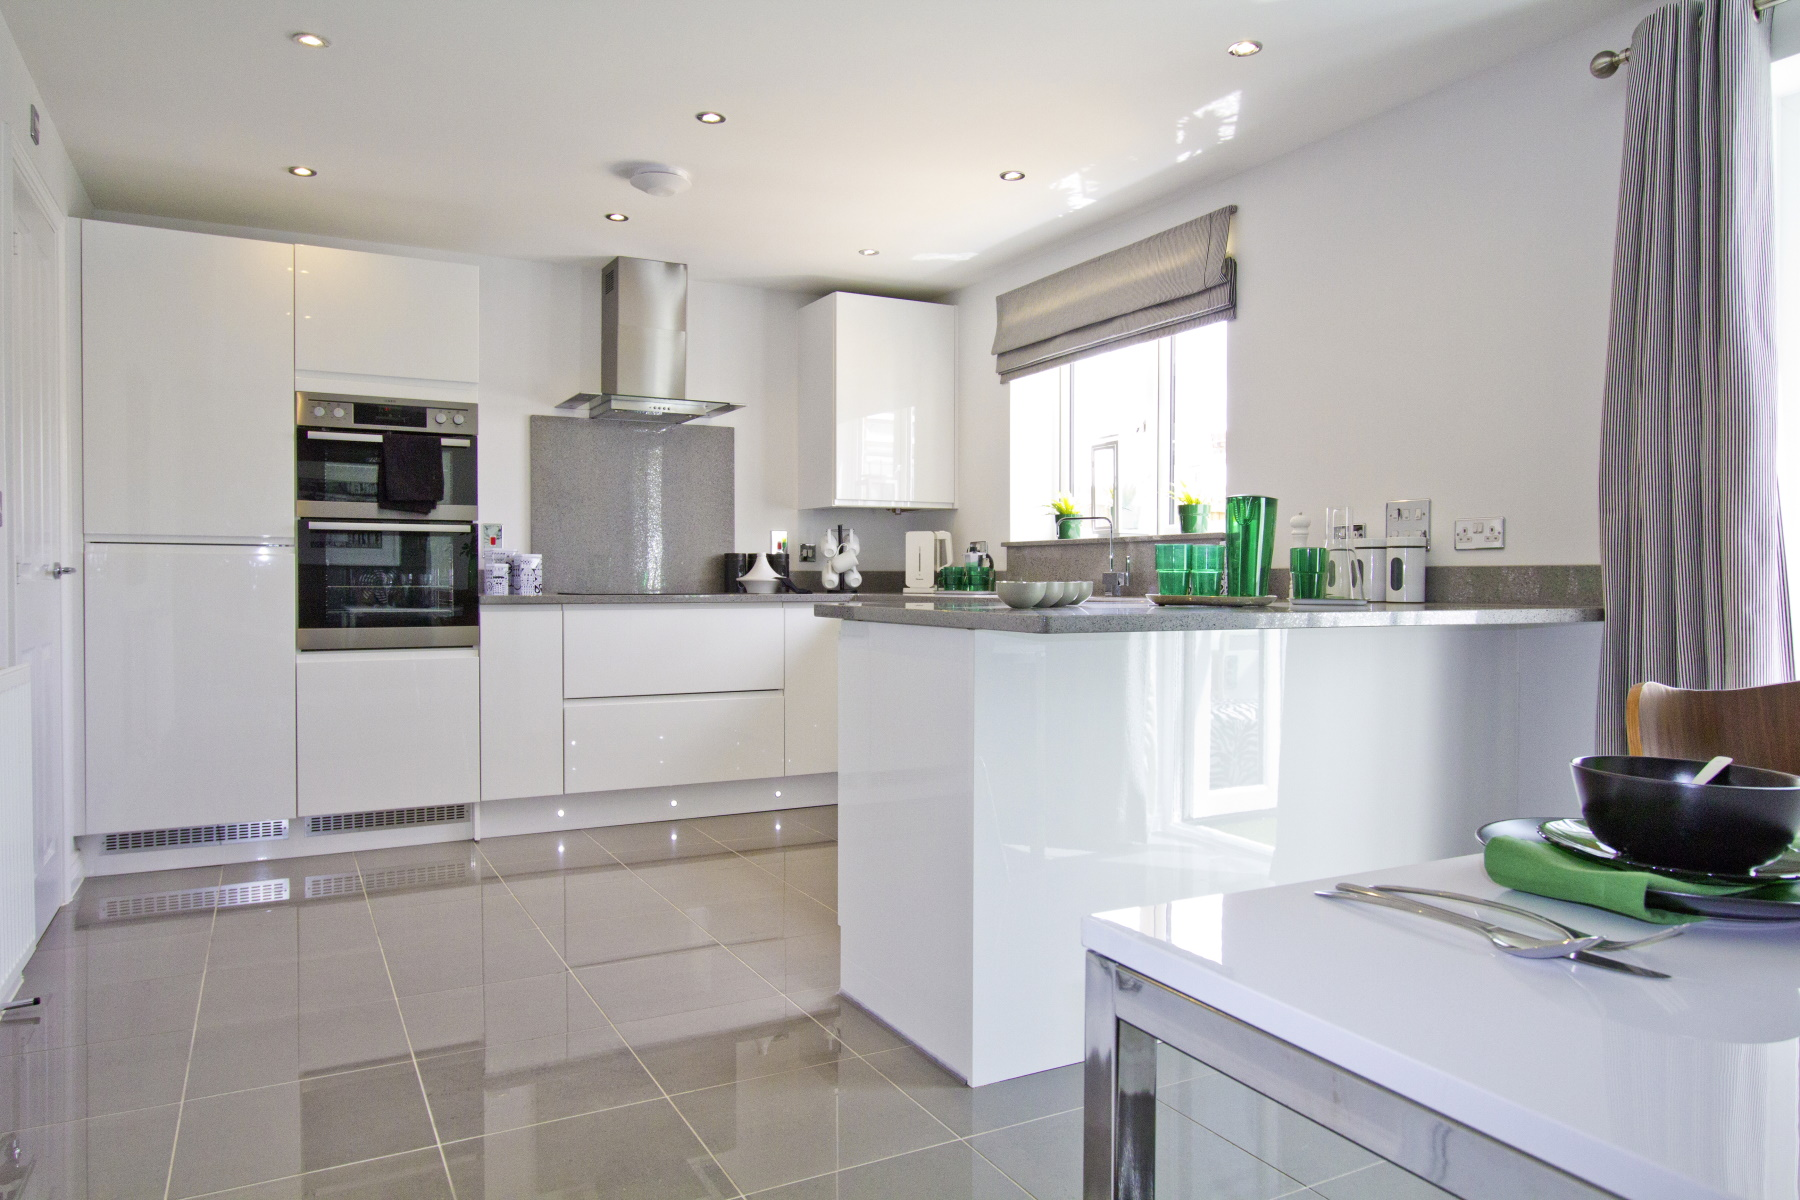 TW Exeter - Plumb Park - Wareham example kitchen 5